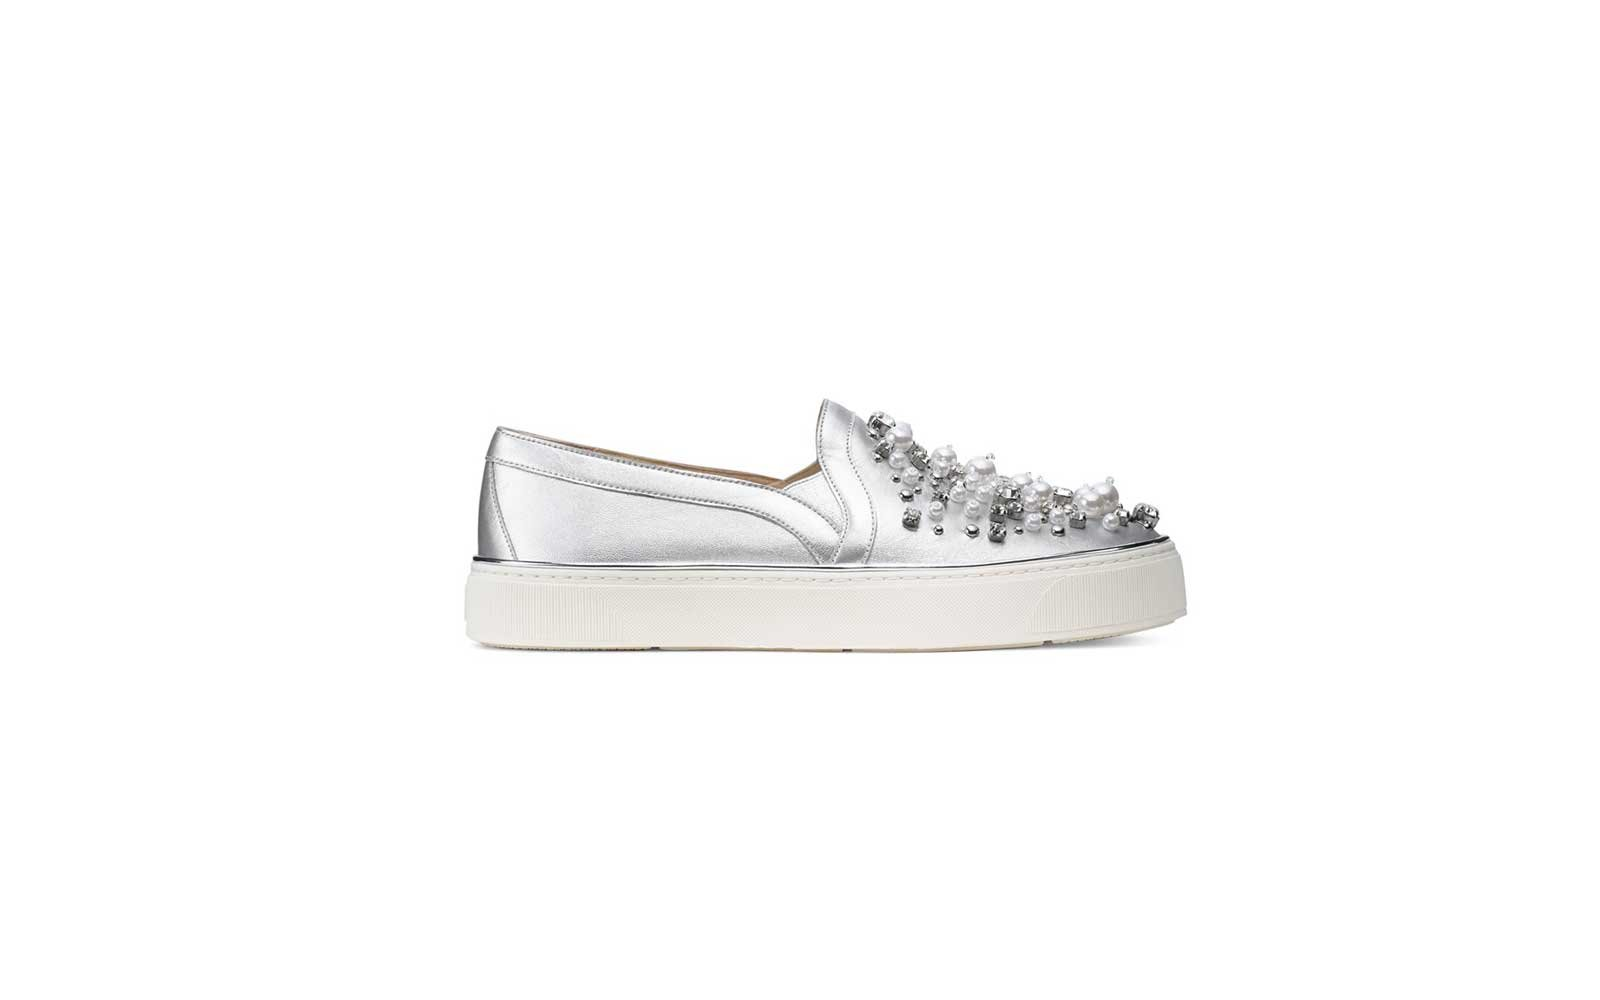 Stuart Weitzman The Décor Sneaker in Silver